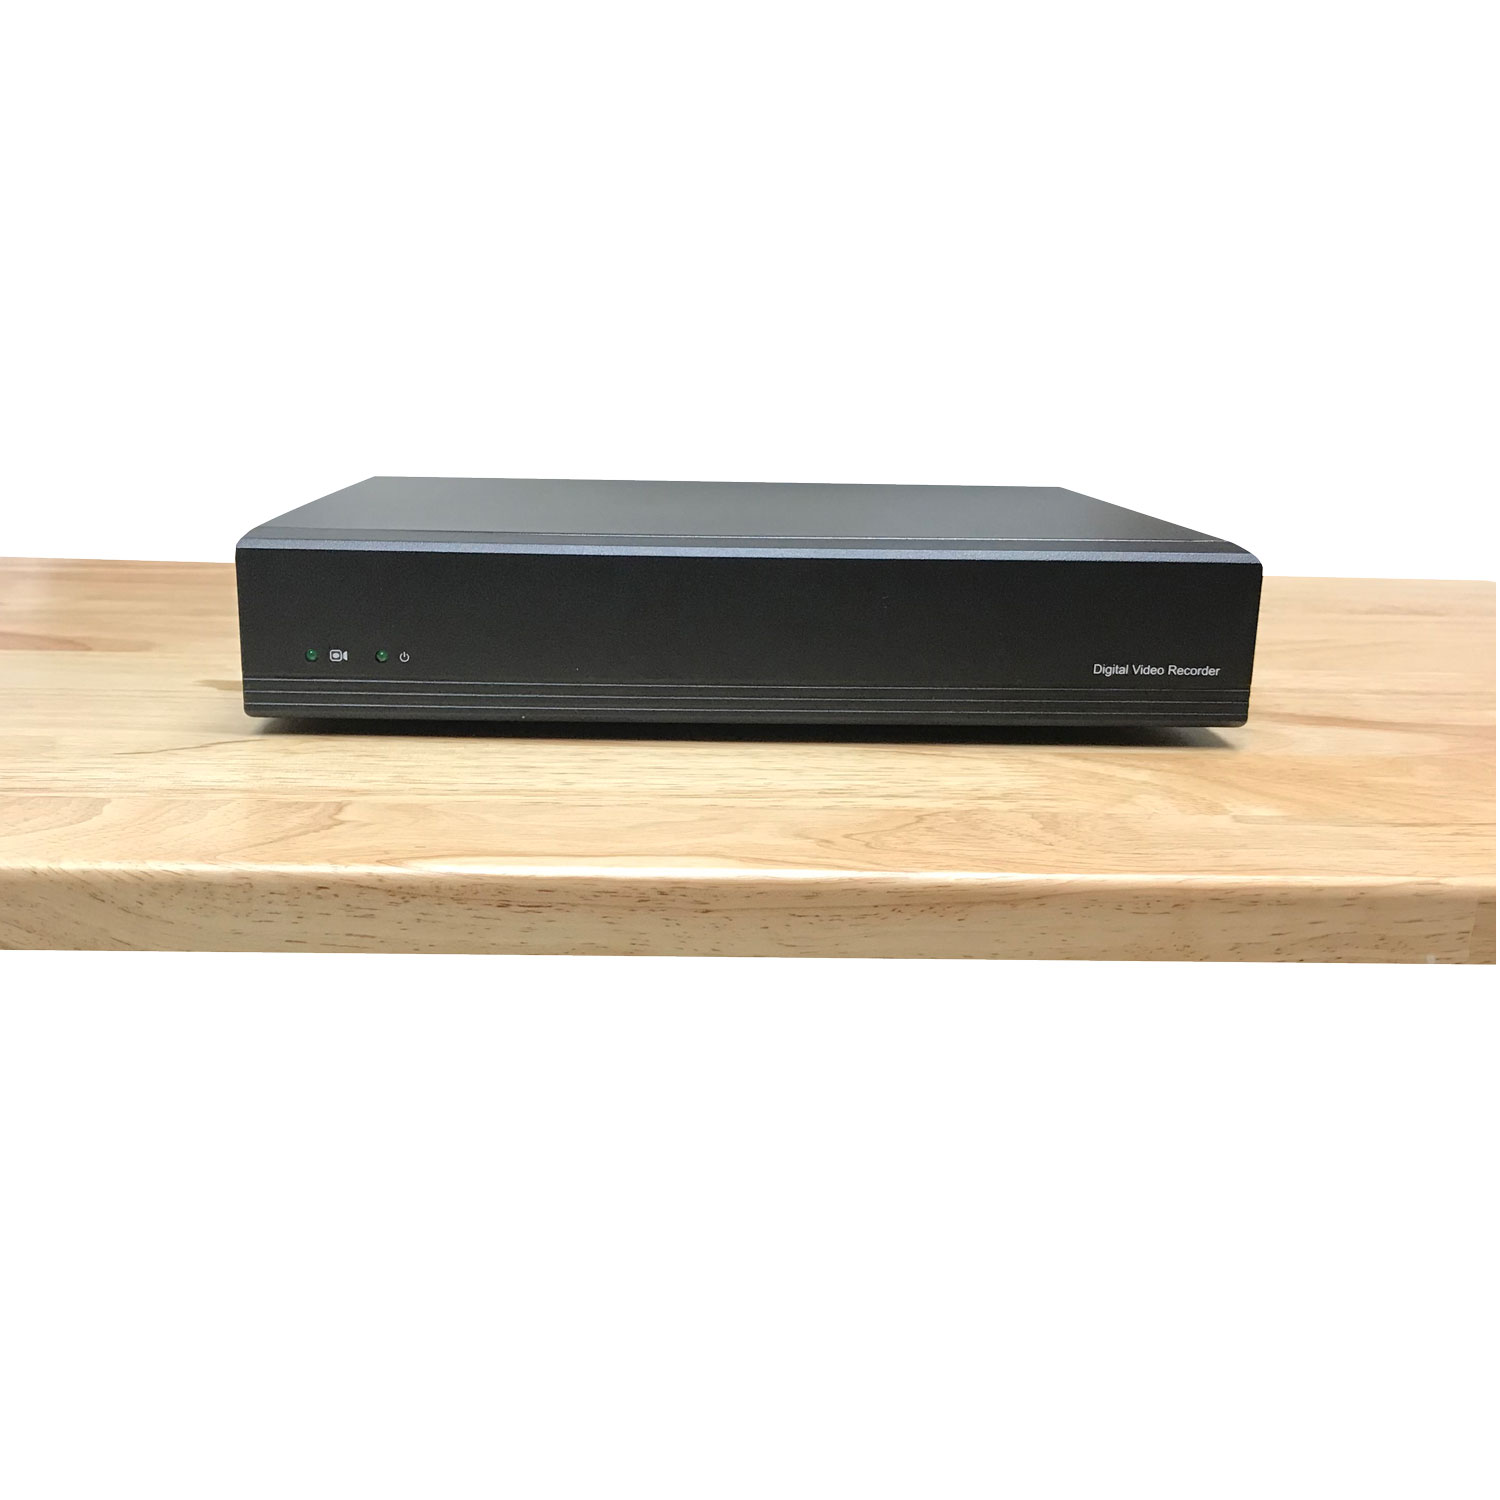 Microseven 4k Poe Nvr 8mp 8ch Compatible With Alexa H 265